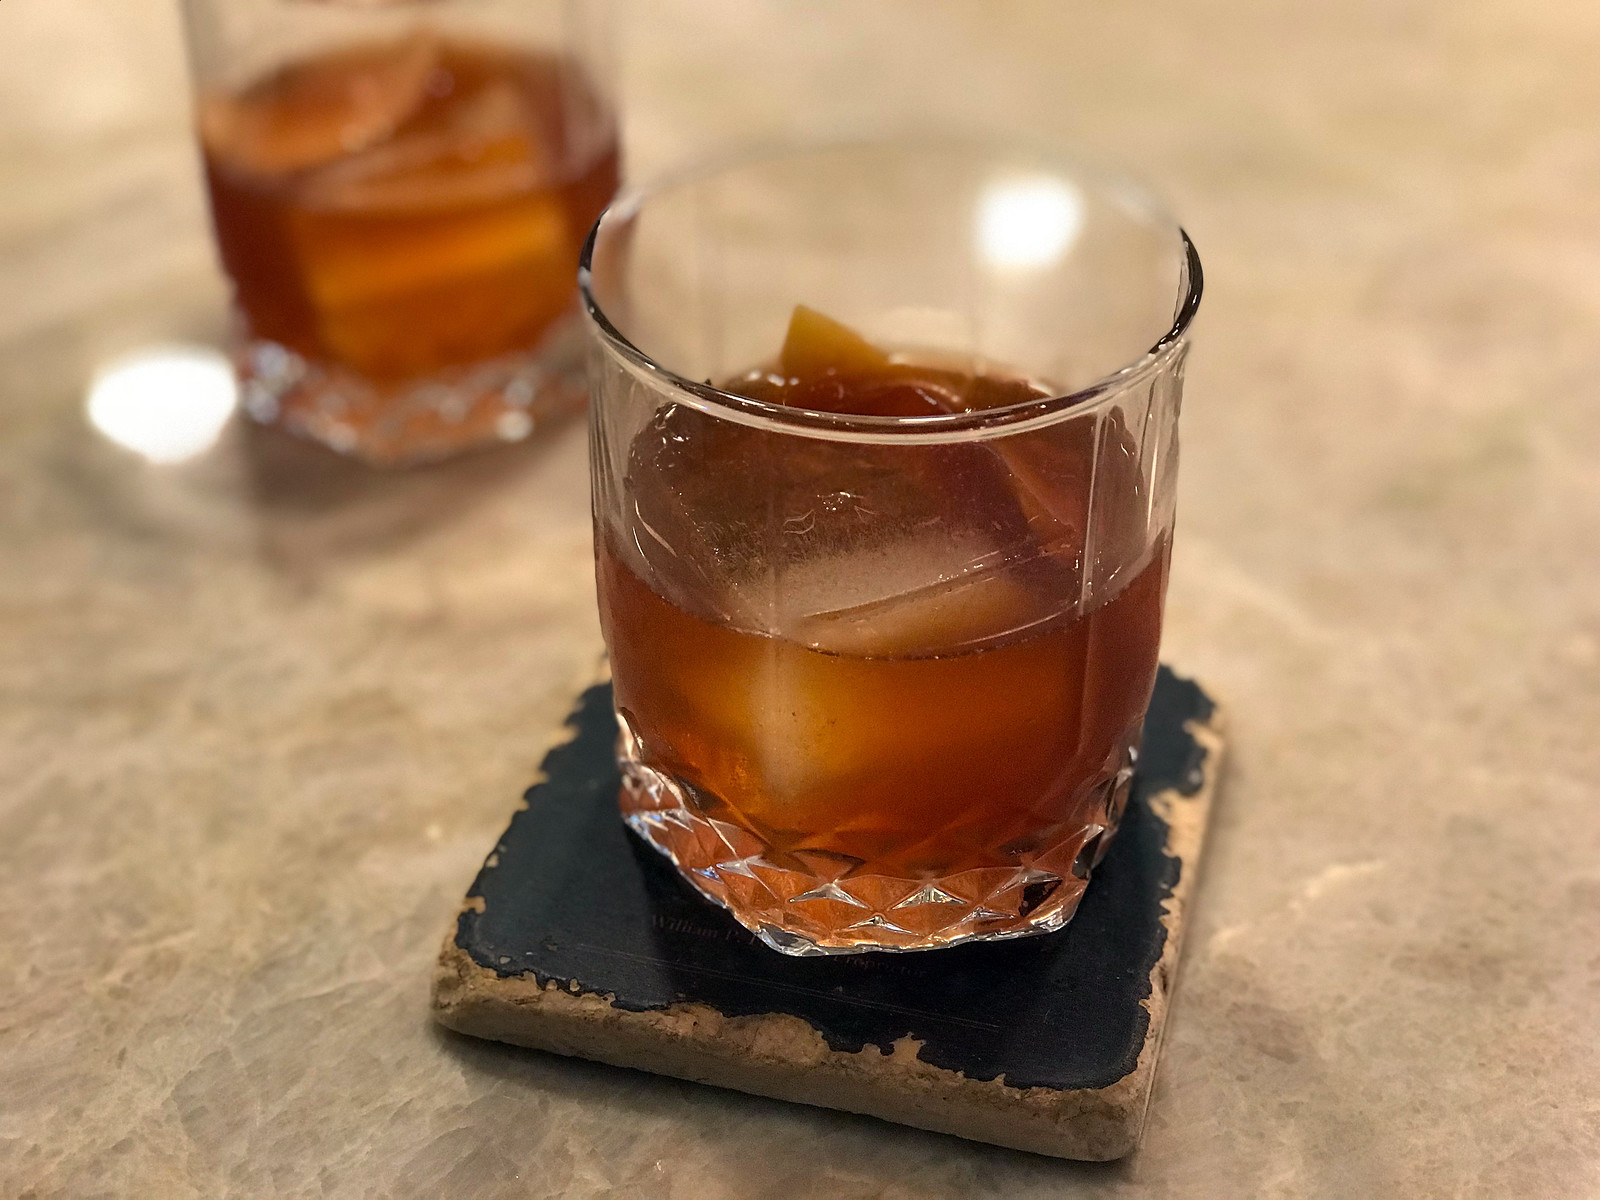 Apple and Pear Old Fashioned